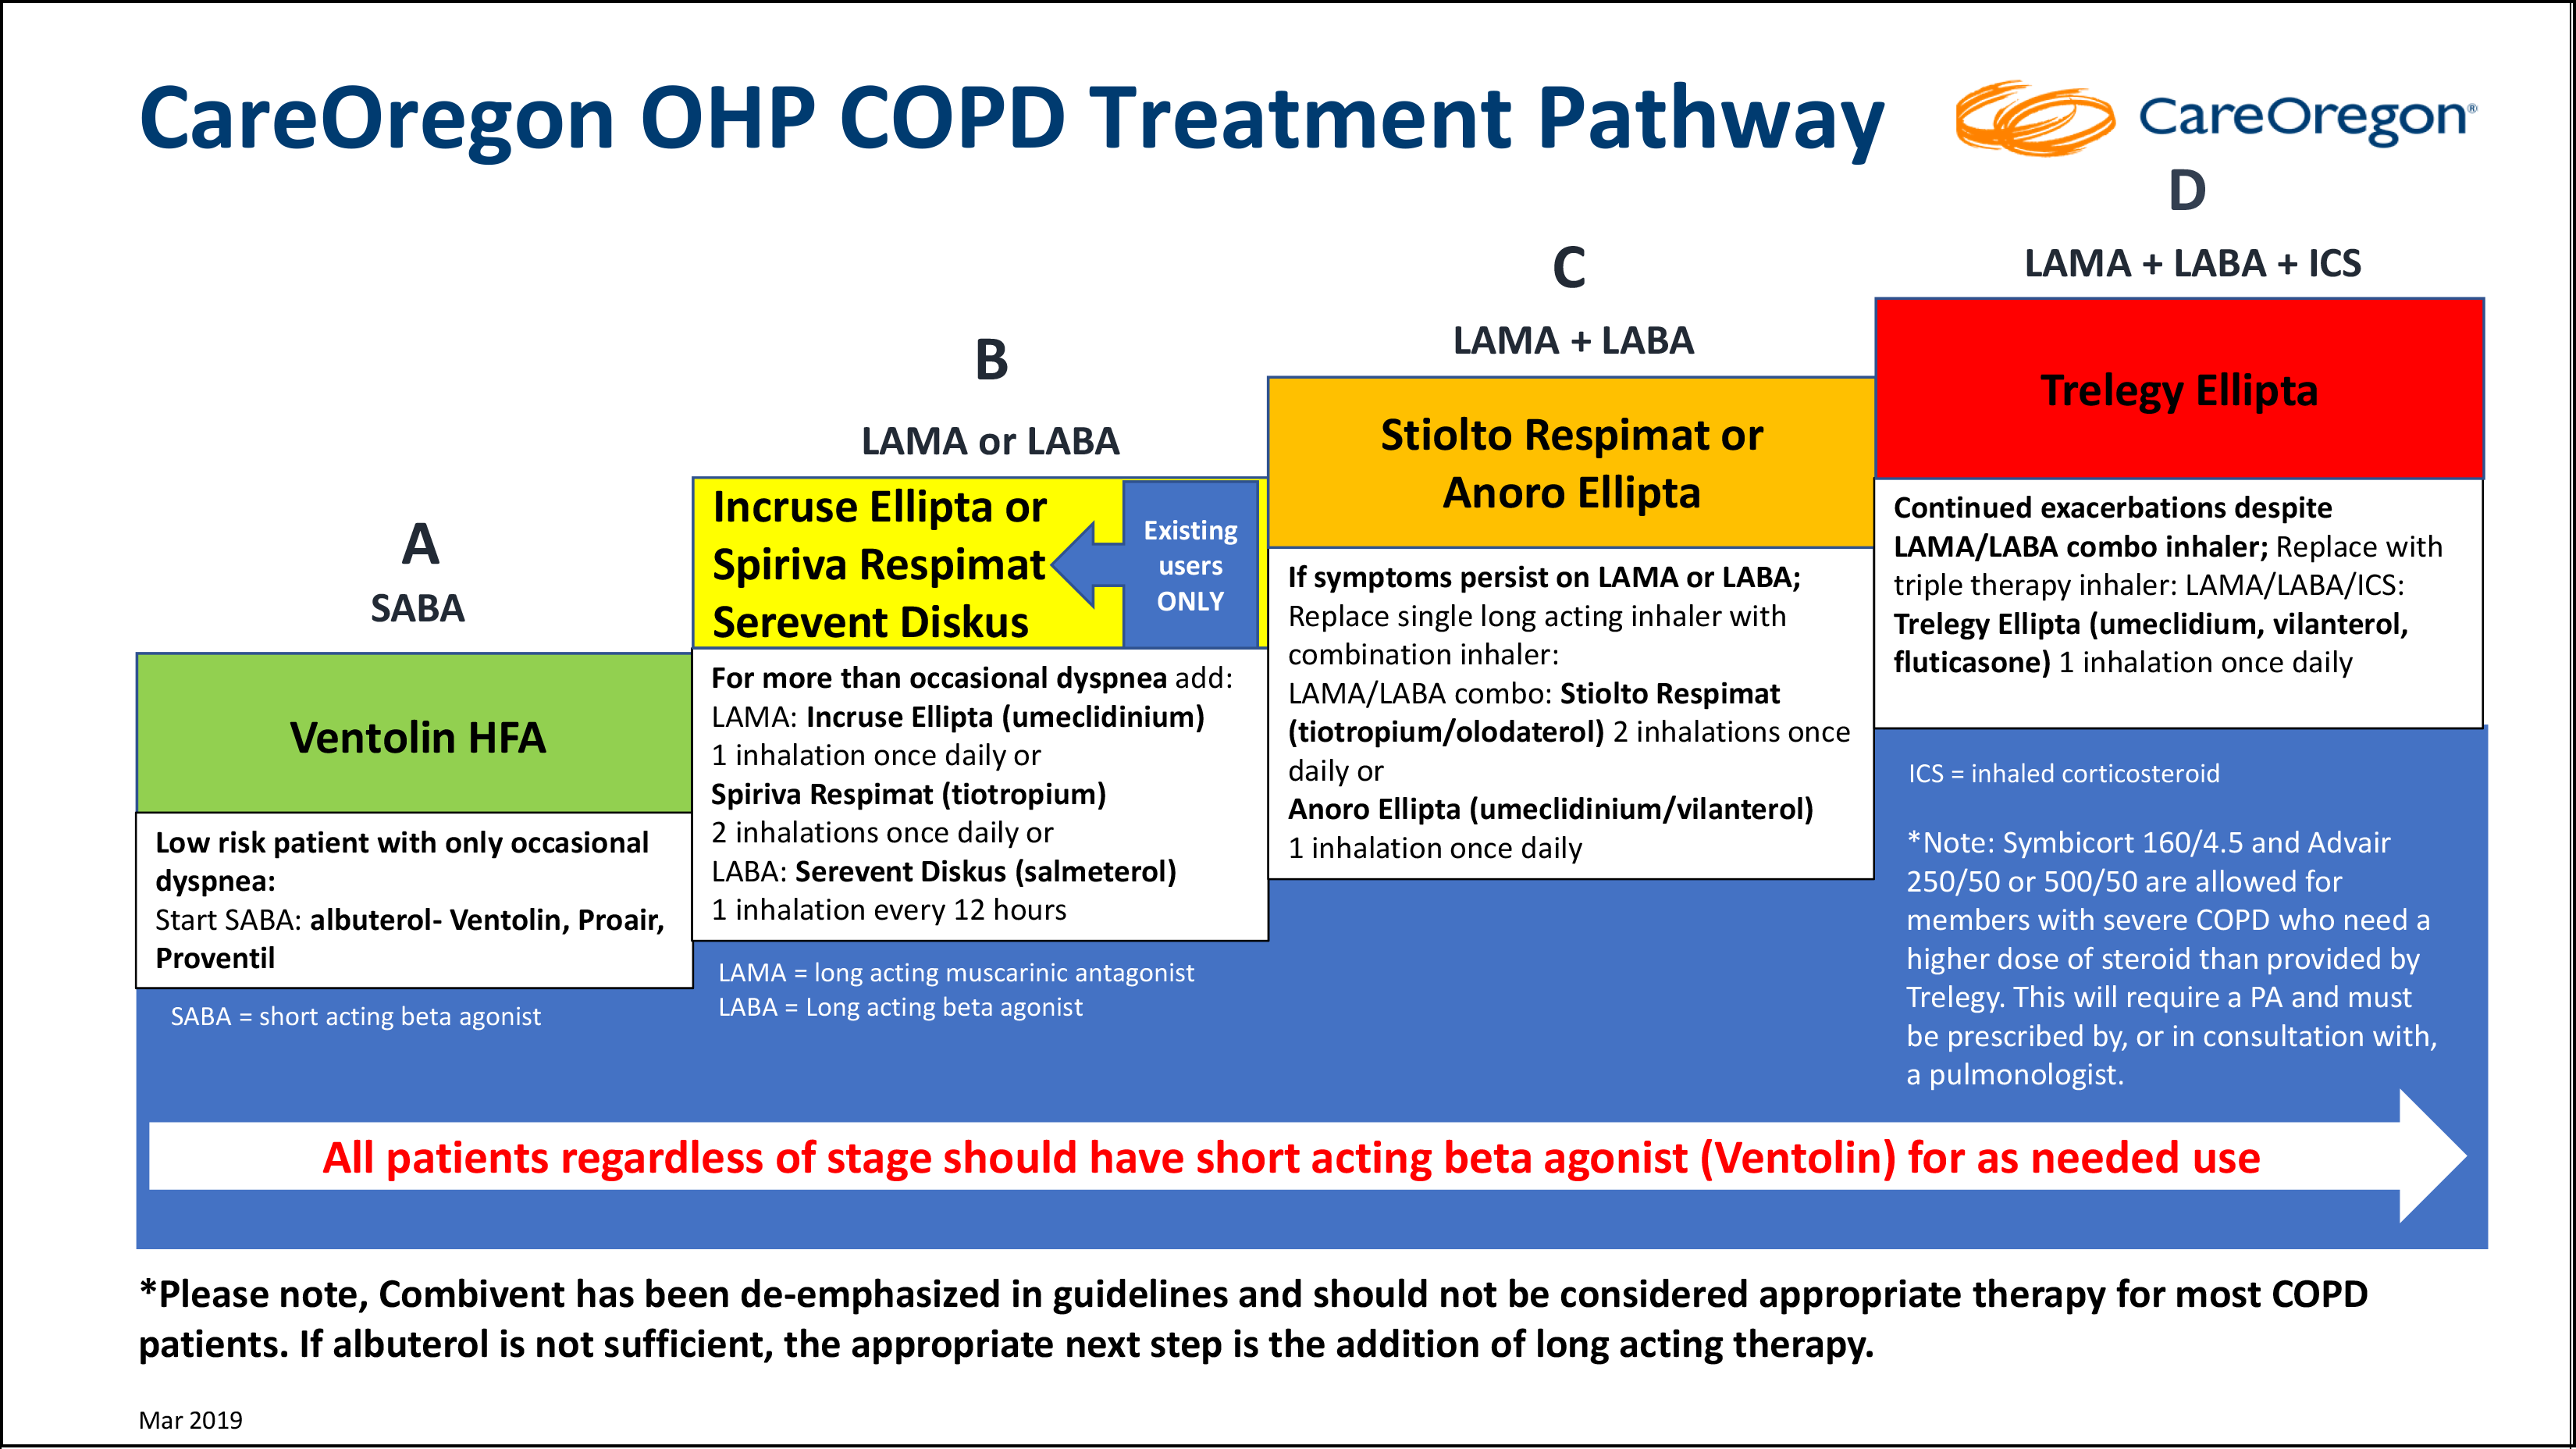 CareOregon COPD Treatment Pathway